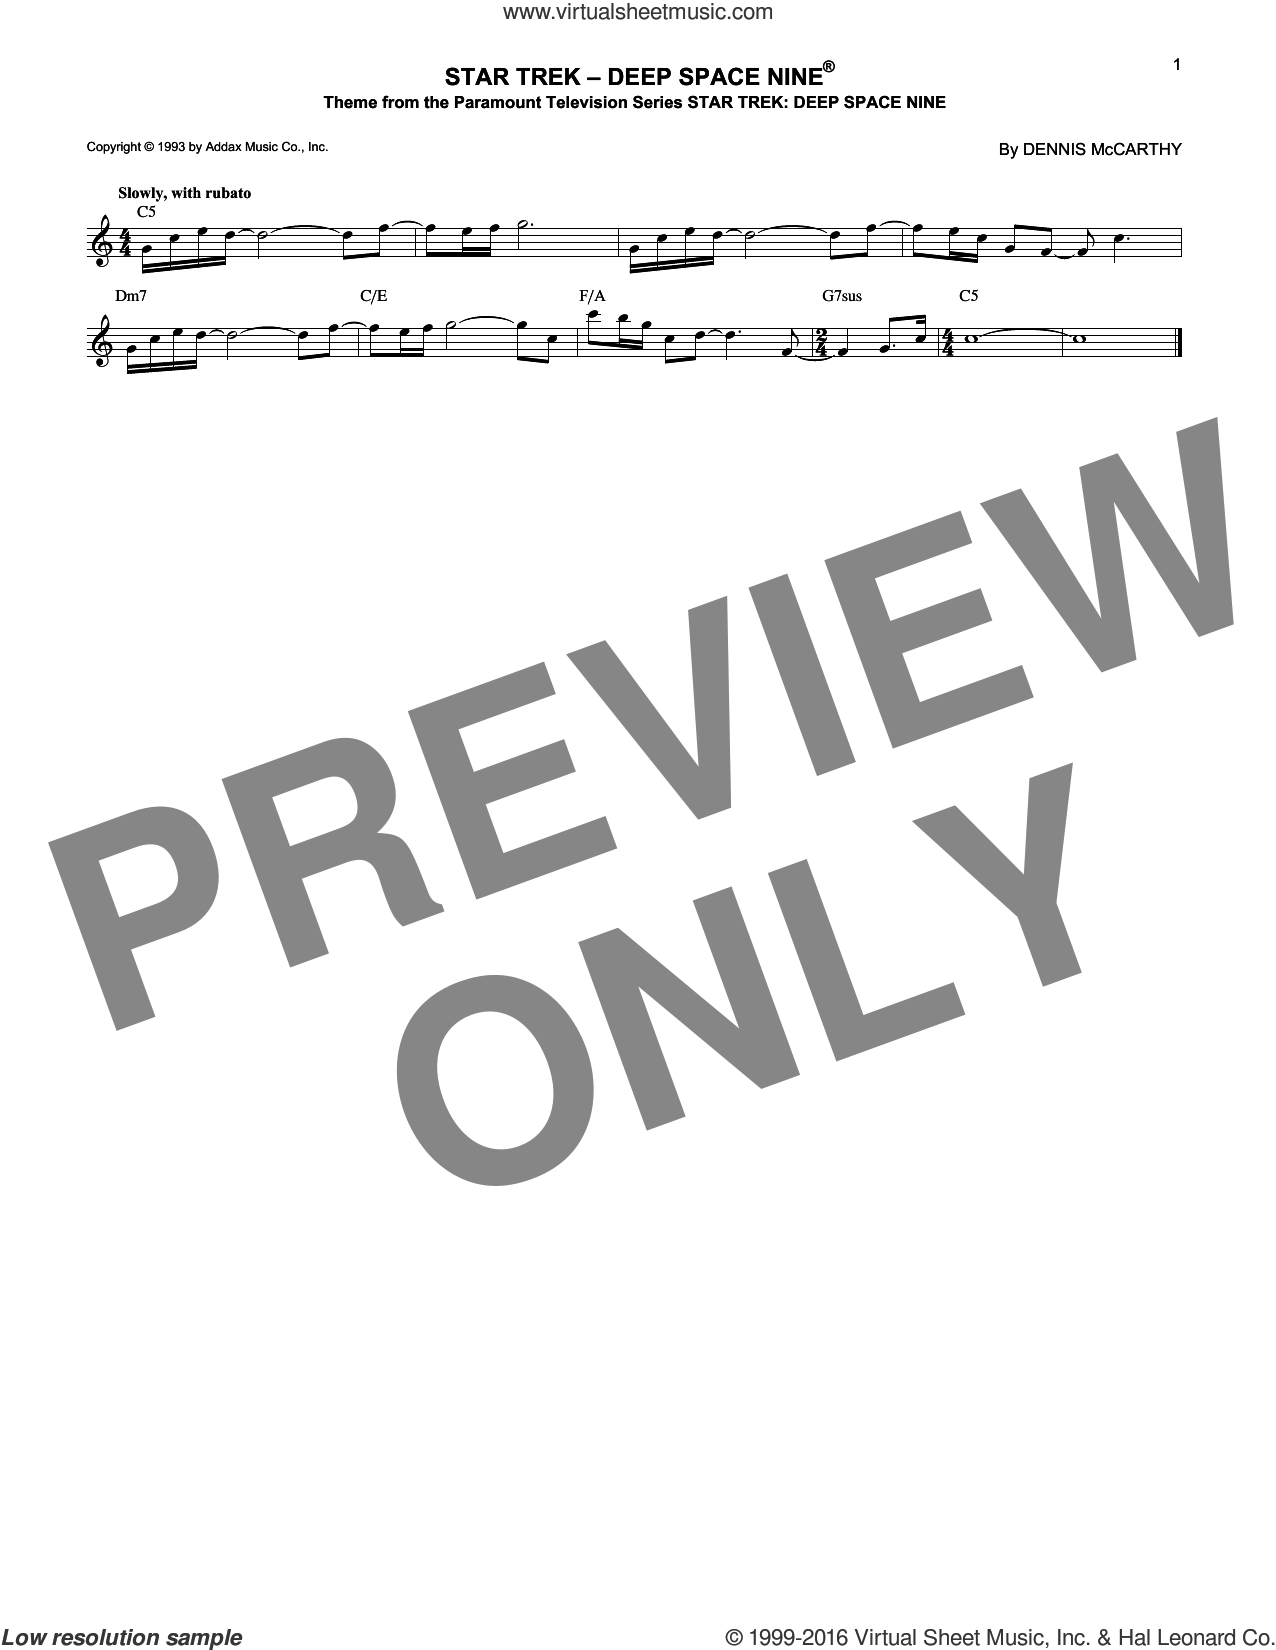 Star Trek - Deep Space Nine sheet music for voice and other instruments (fake book) by Dennis McCarthy, intermediate skill level